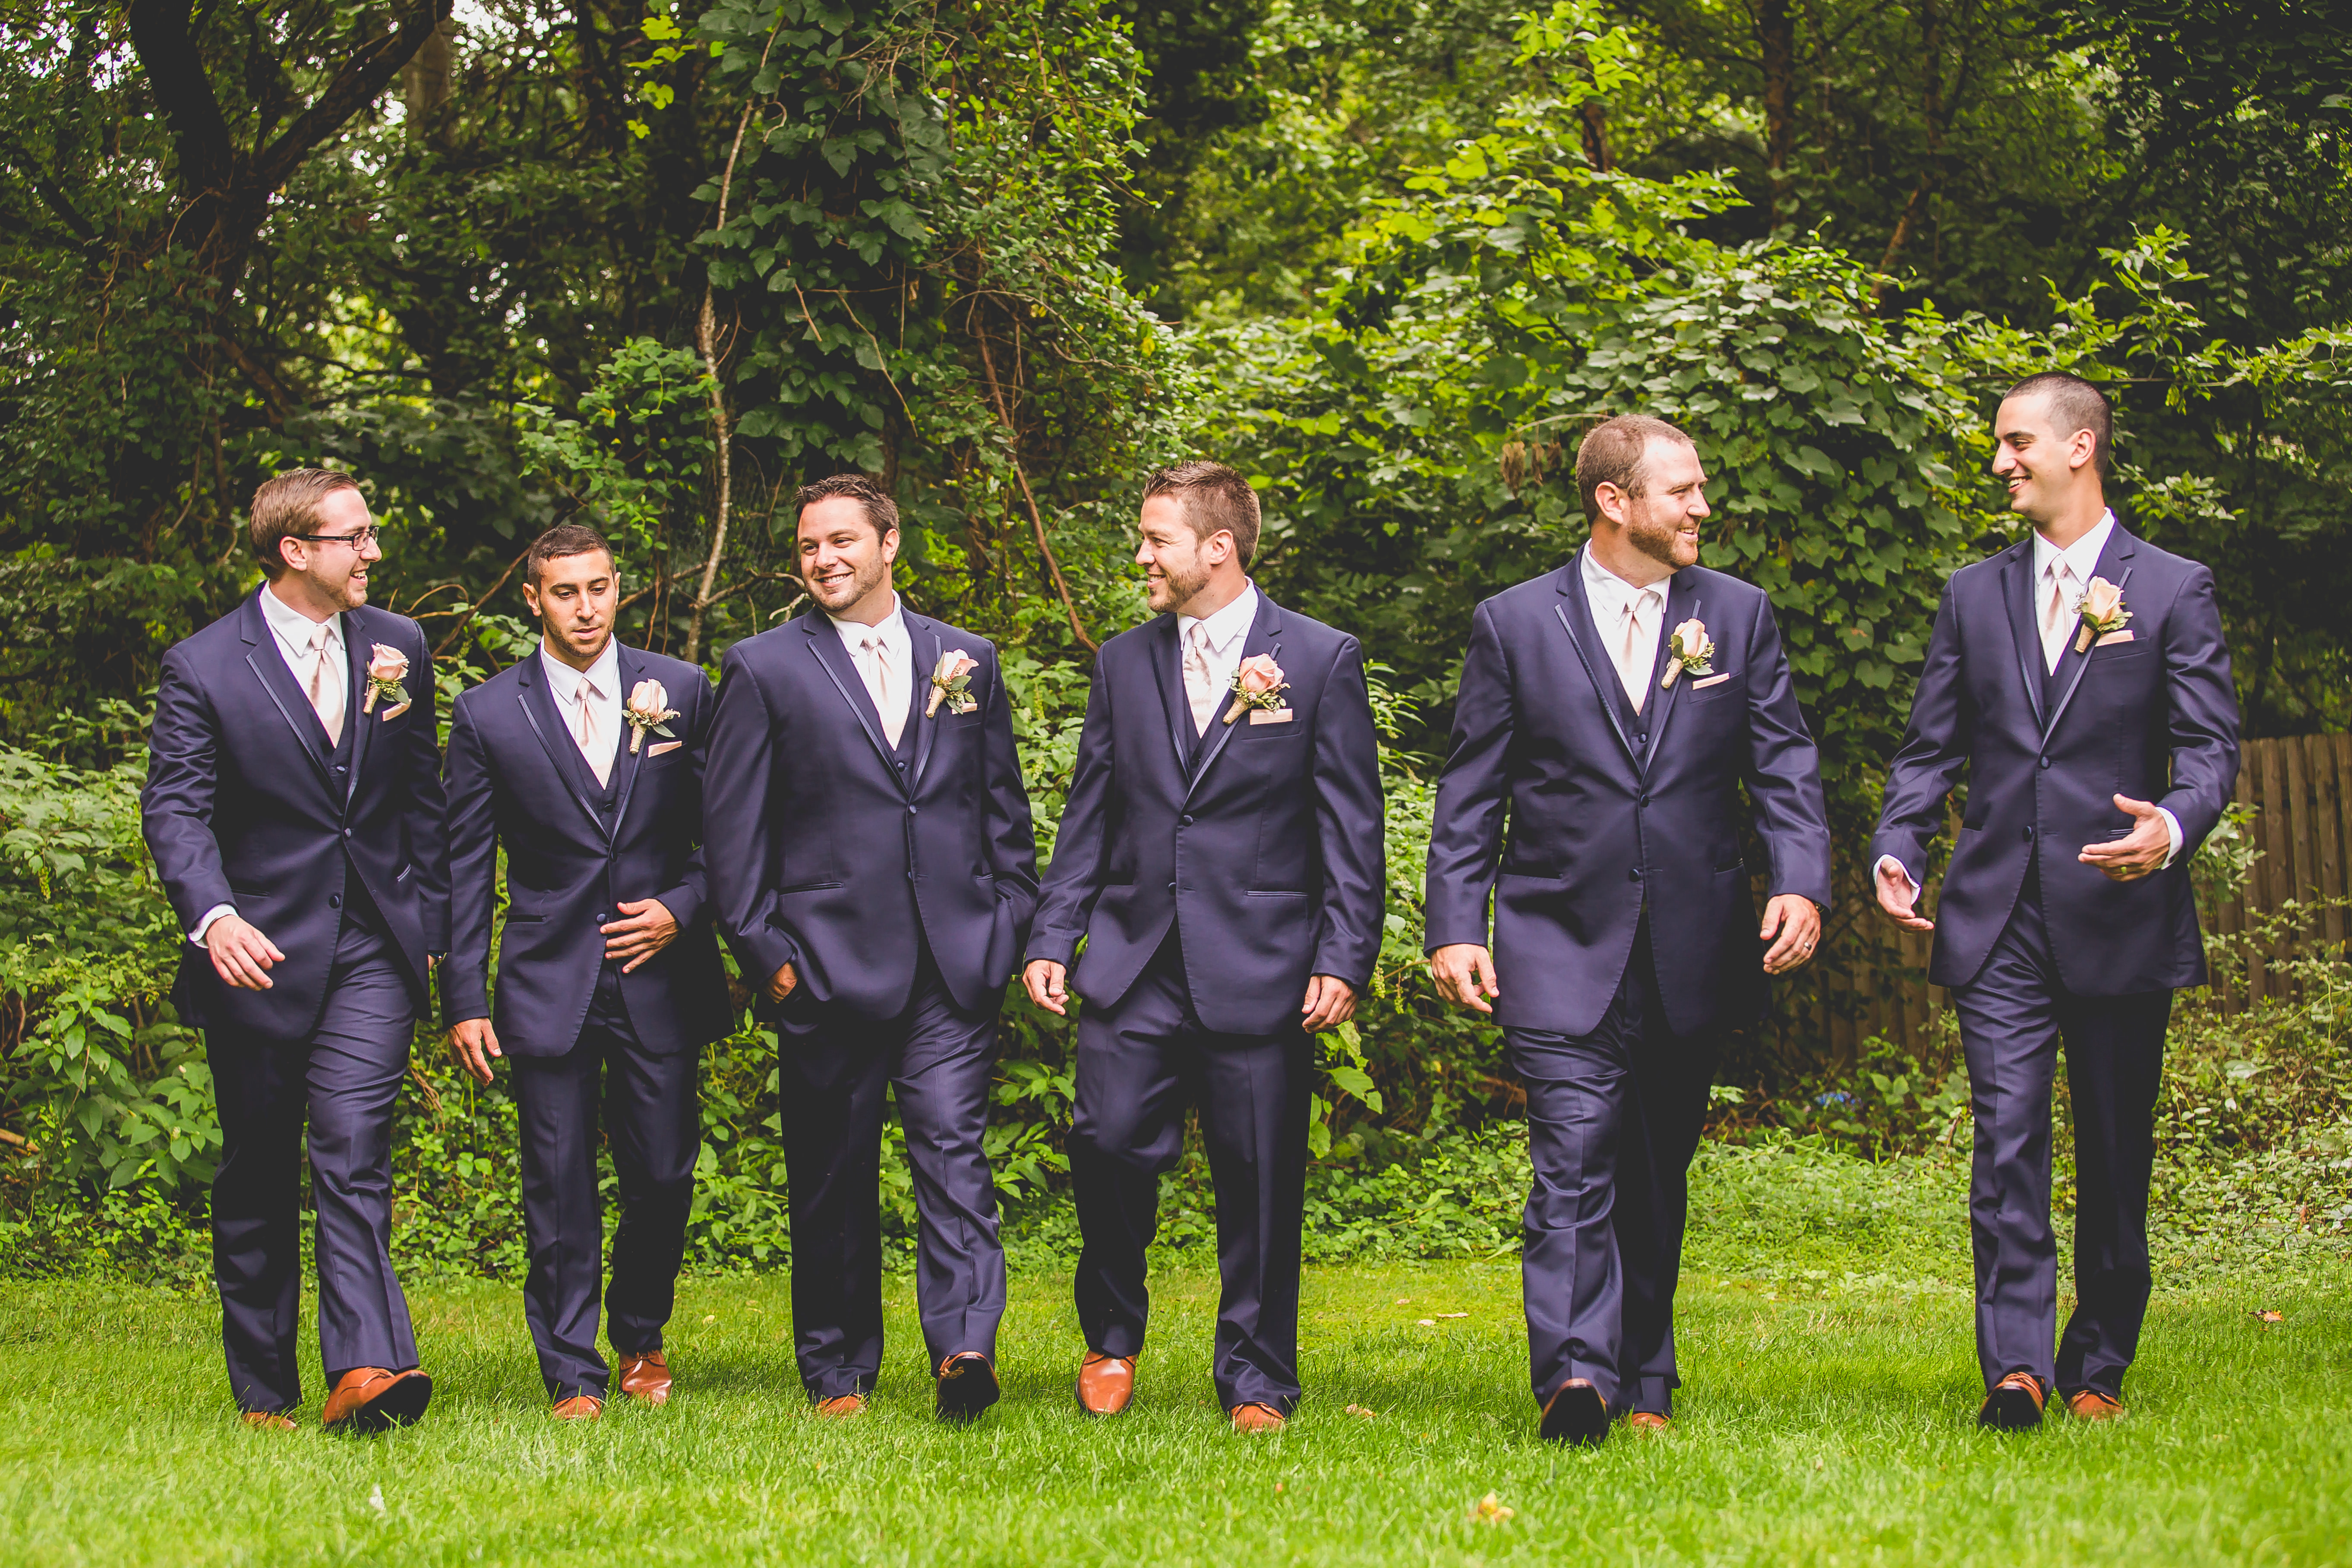 preview of buy cheap release date: Summer Wedding Groom Fashion | Crystal Ballroom, Freehold NJ